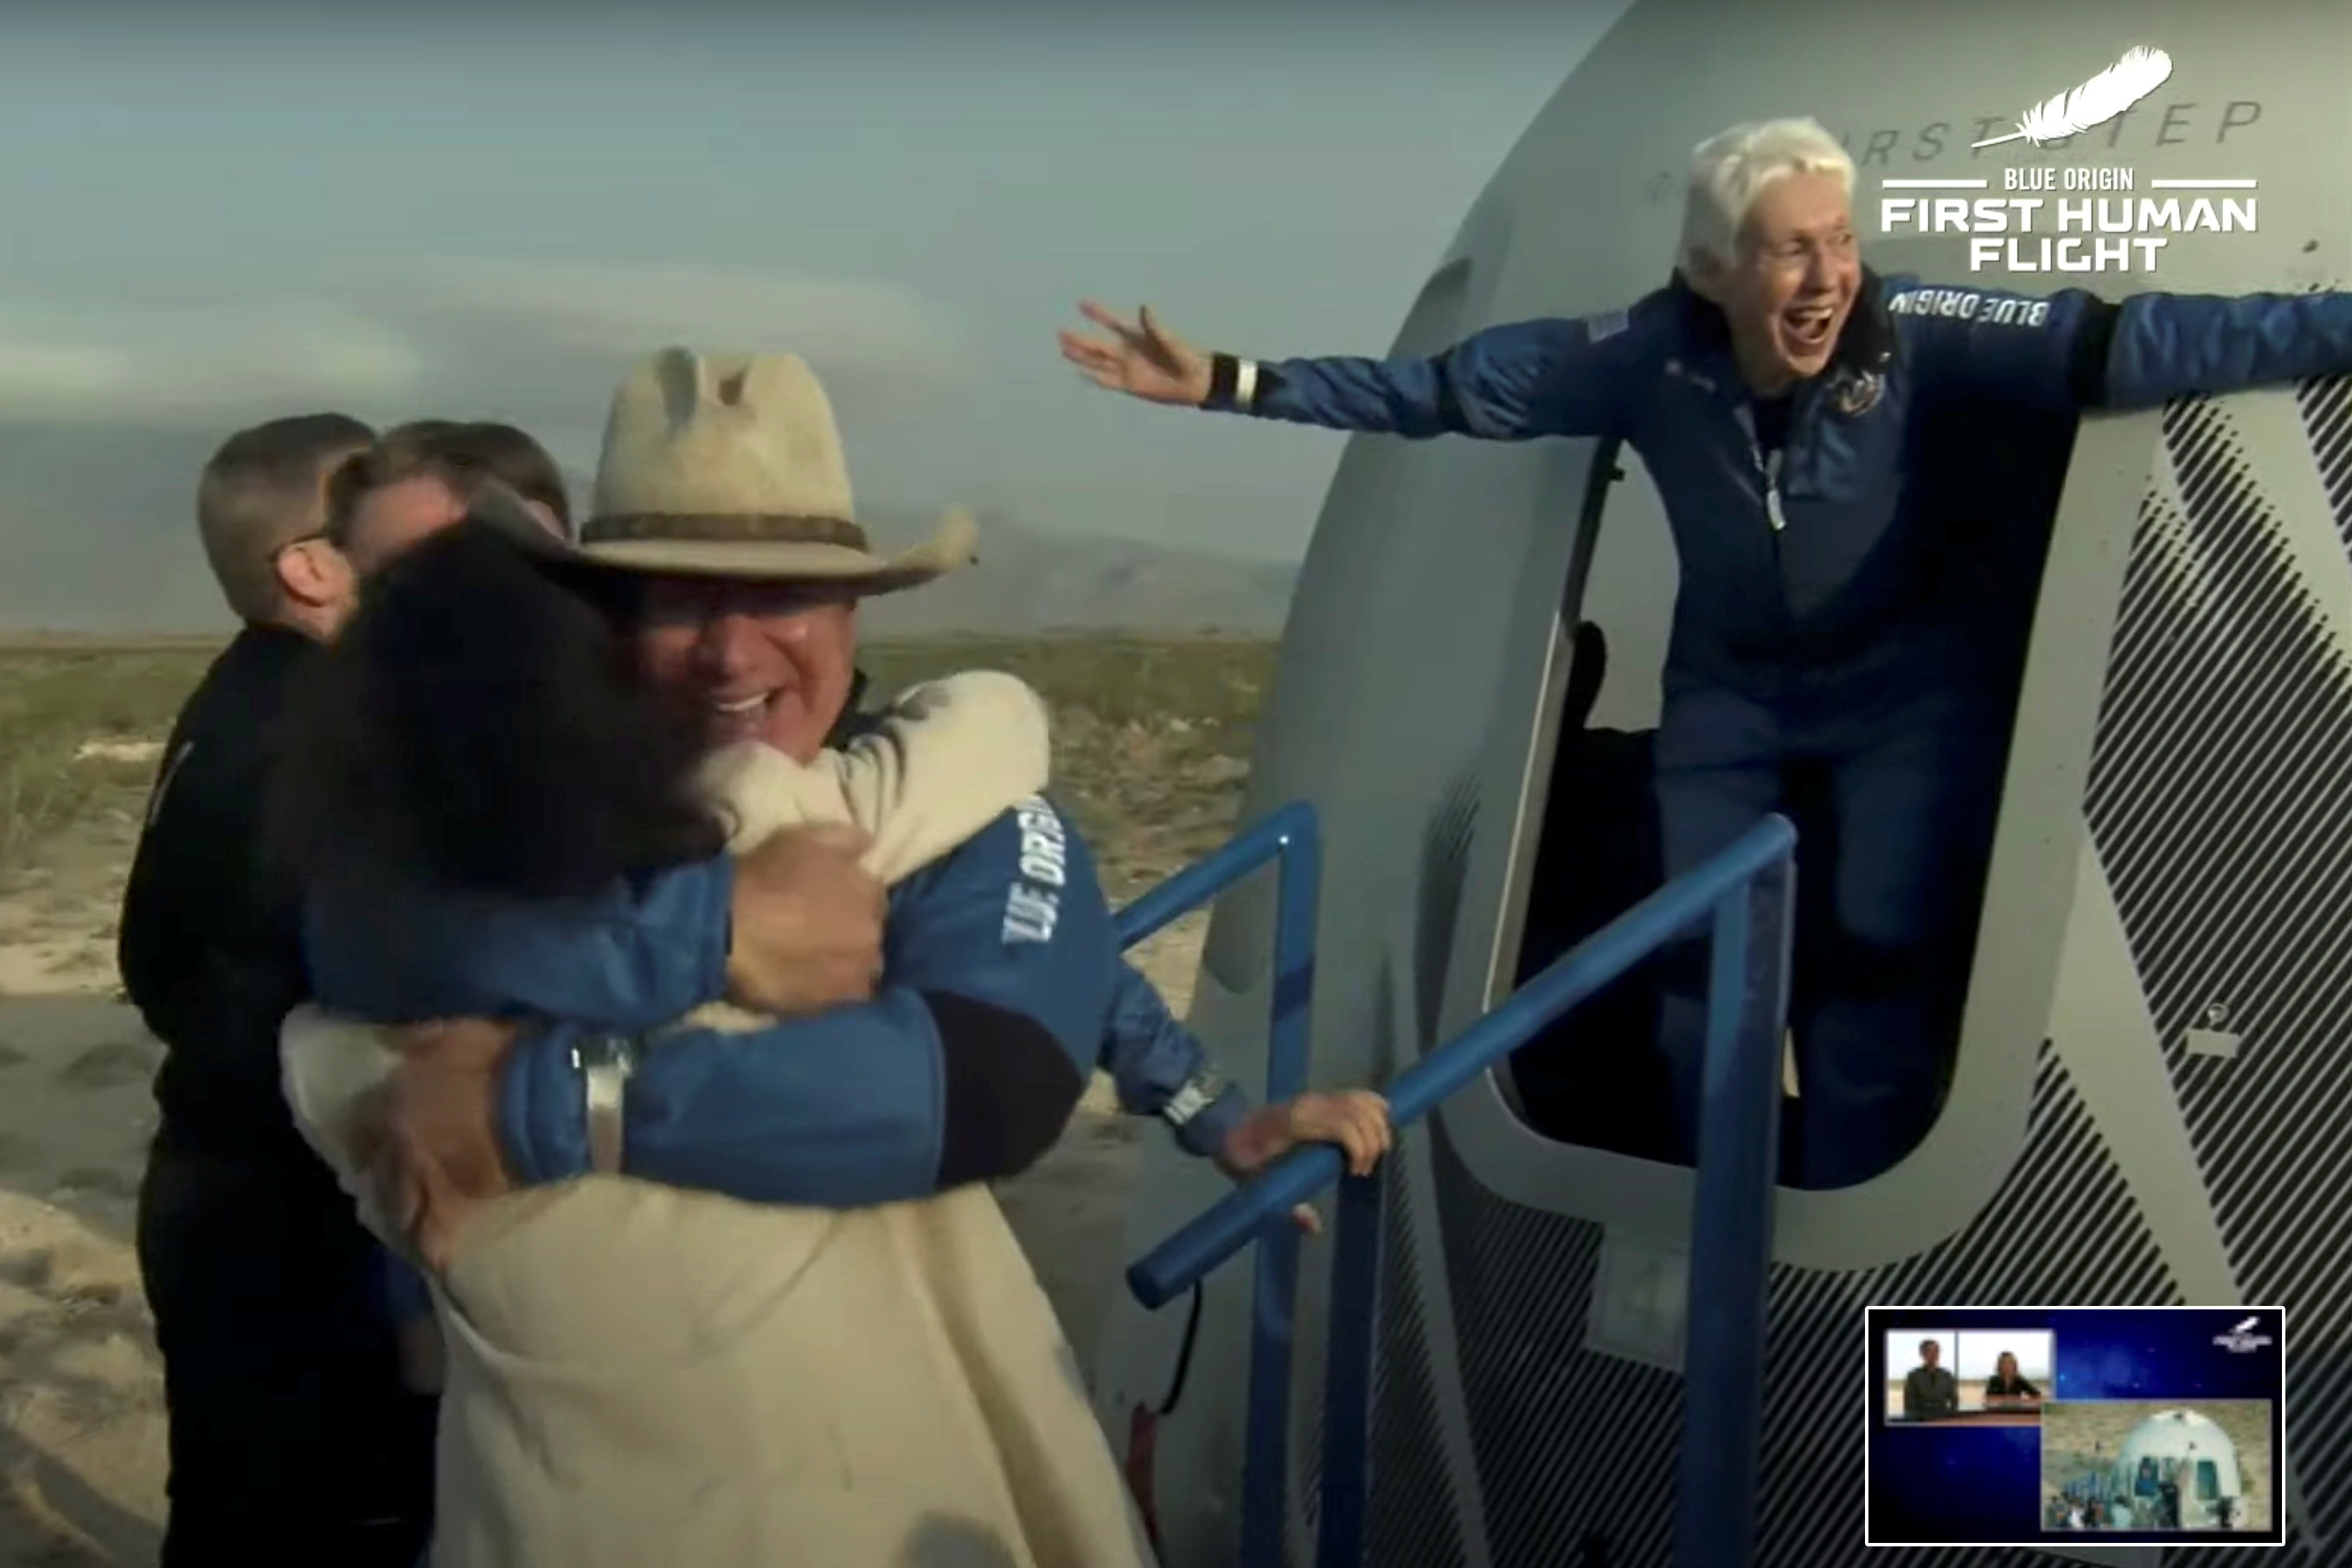 Billionaire businessman Jeff Bezos and pioneering female aviator Wally Funk emerge from their capsule after their flight aboard Blue Origin's New Shepard rocket on the world's first unpiloted suborbital flight near Van Horn, Texas, U.S., July 20, 2021 in a still image from video.  Blue Origin/Handout via REUTERS.